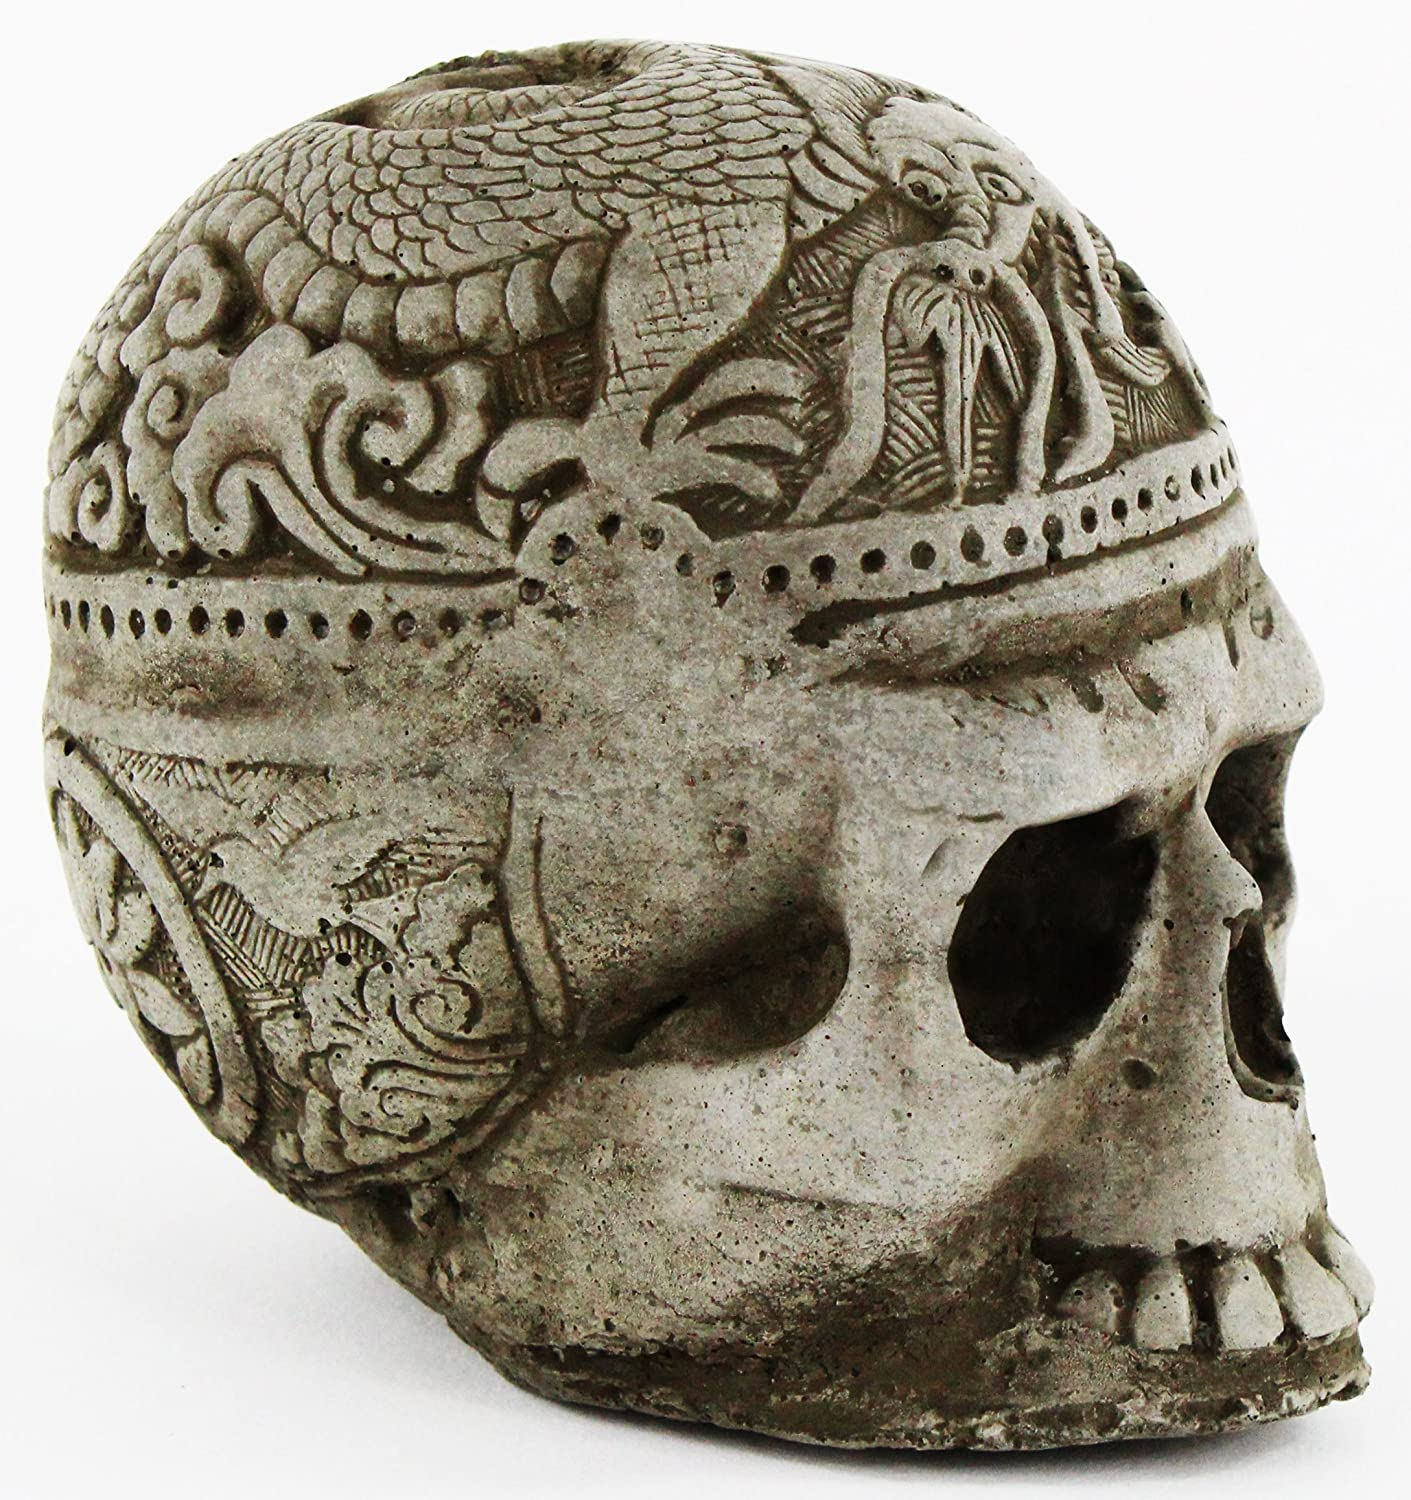 Skull Head Statue with Dragon Home and Garden Statues Cement Figurine Cast Stone Halloween Skull Sculpture